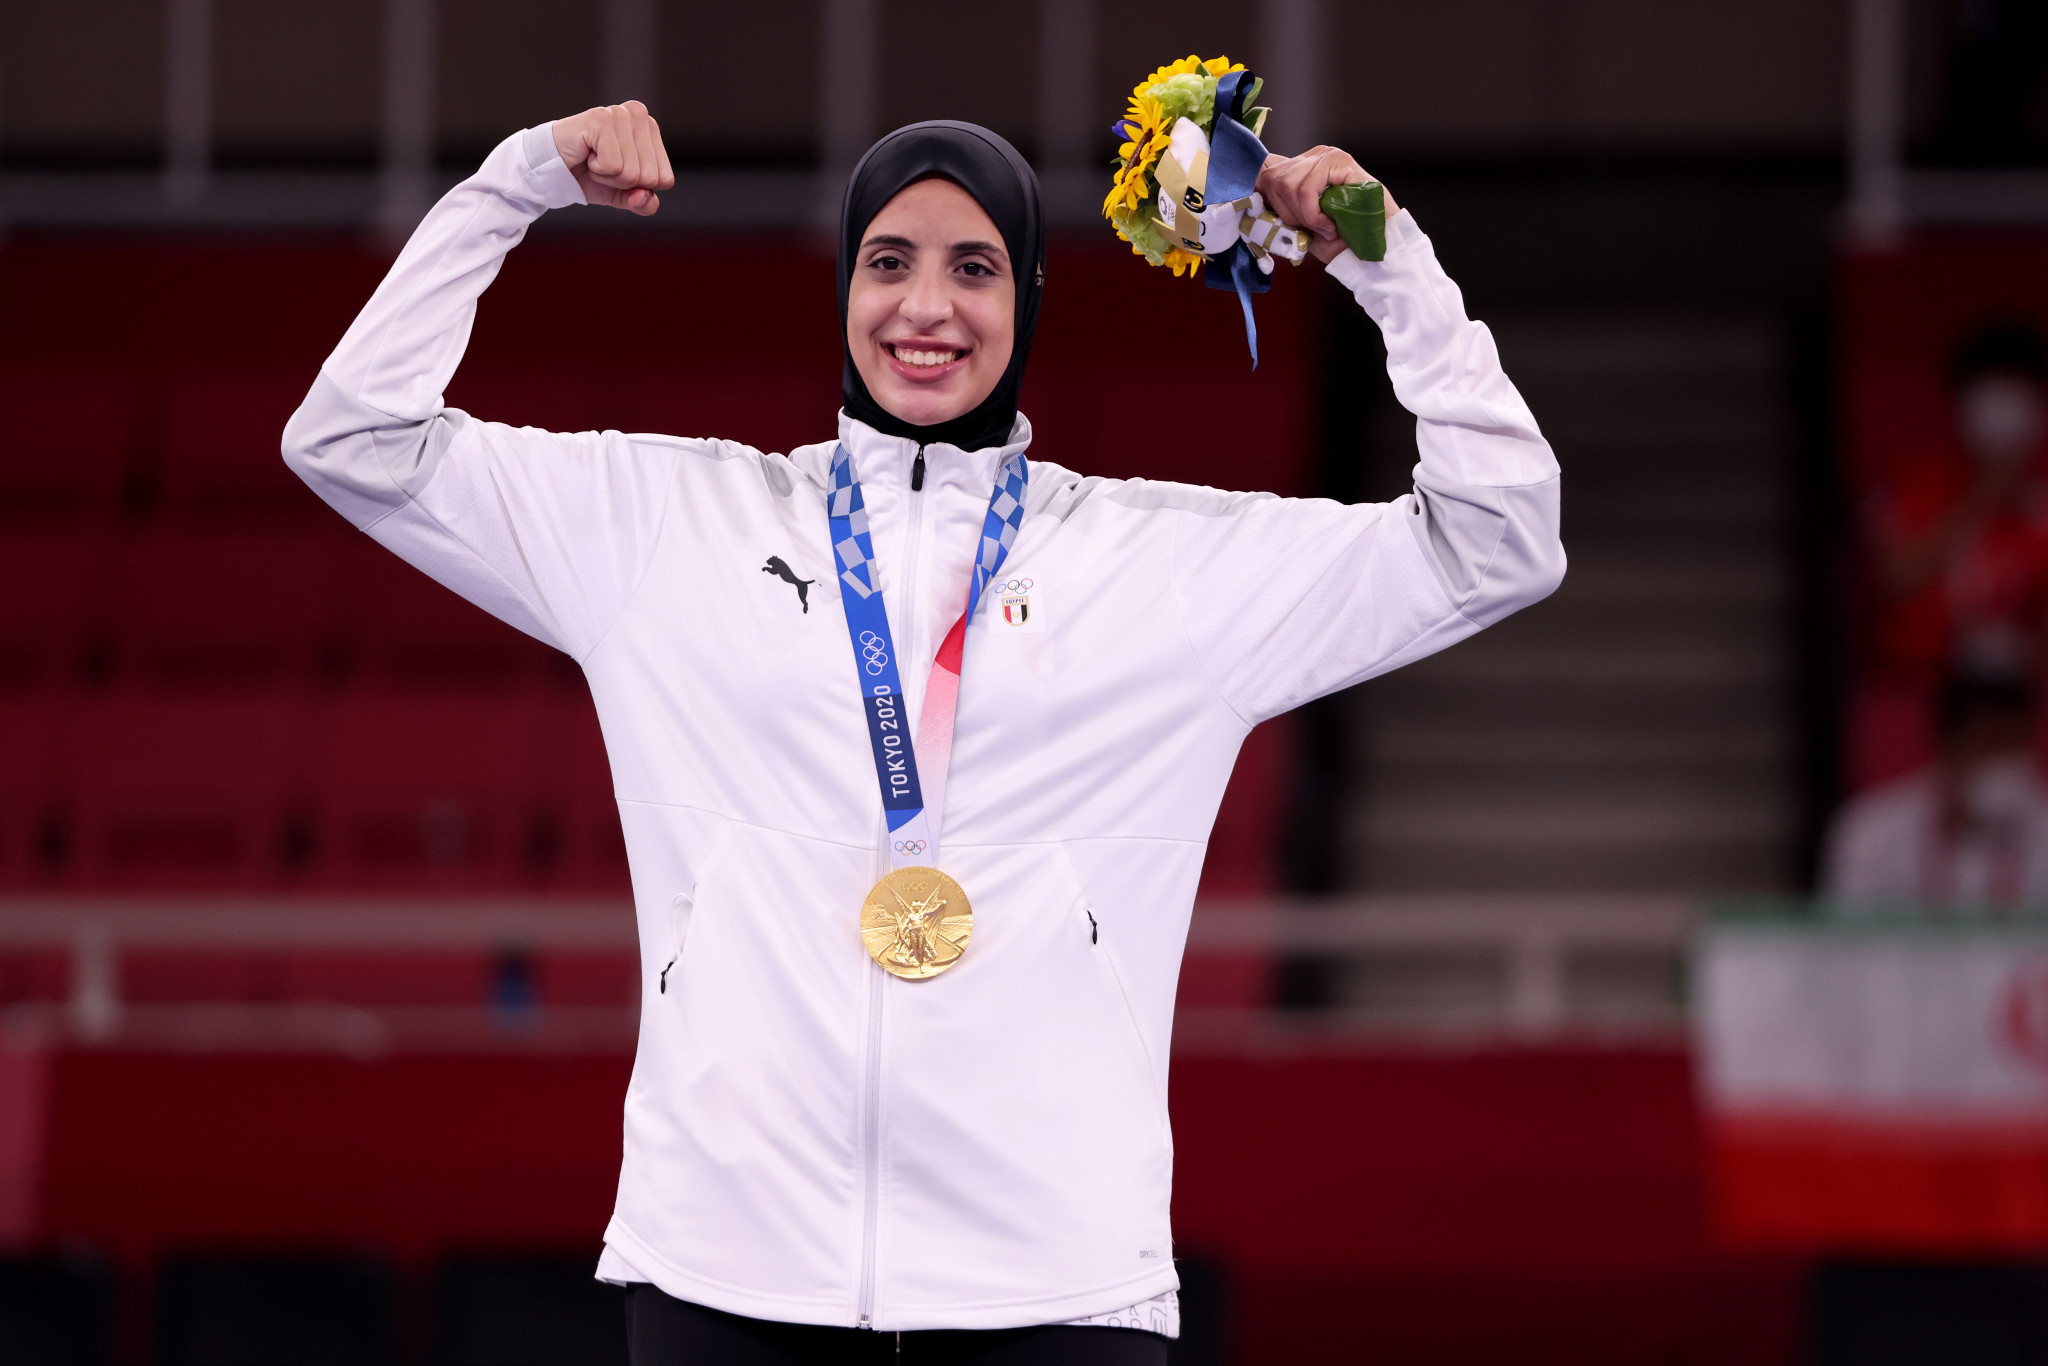 Home hero Feryal Abdelaziz will compete in the third Karate 1-Premier League event in Cairo this weekend ©Getty Images